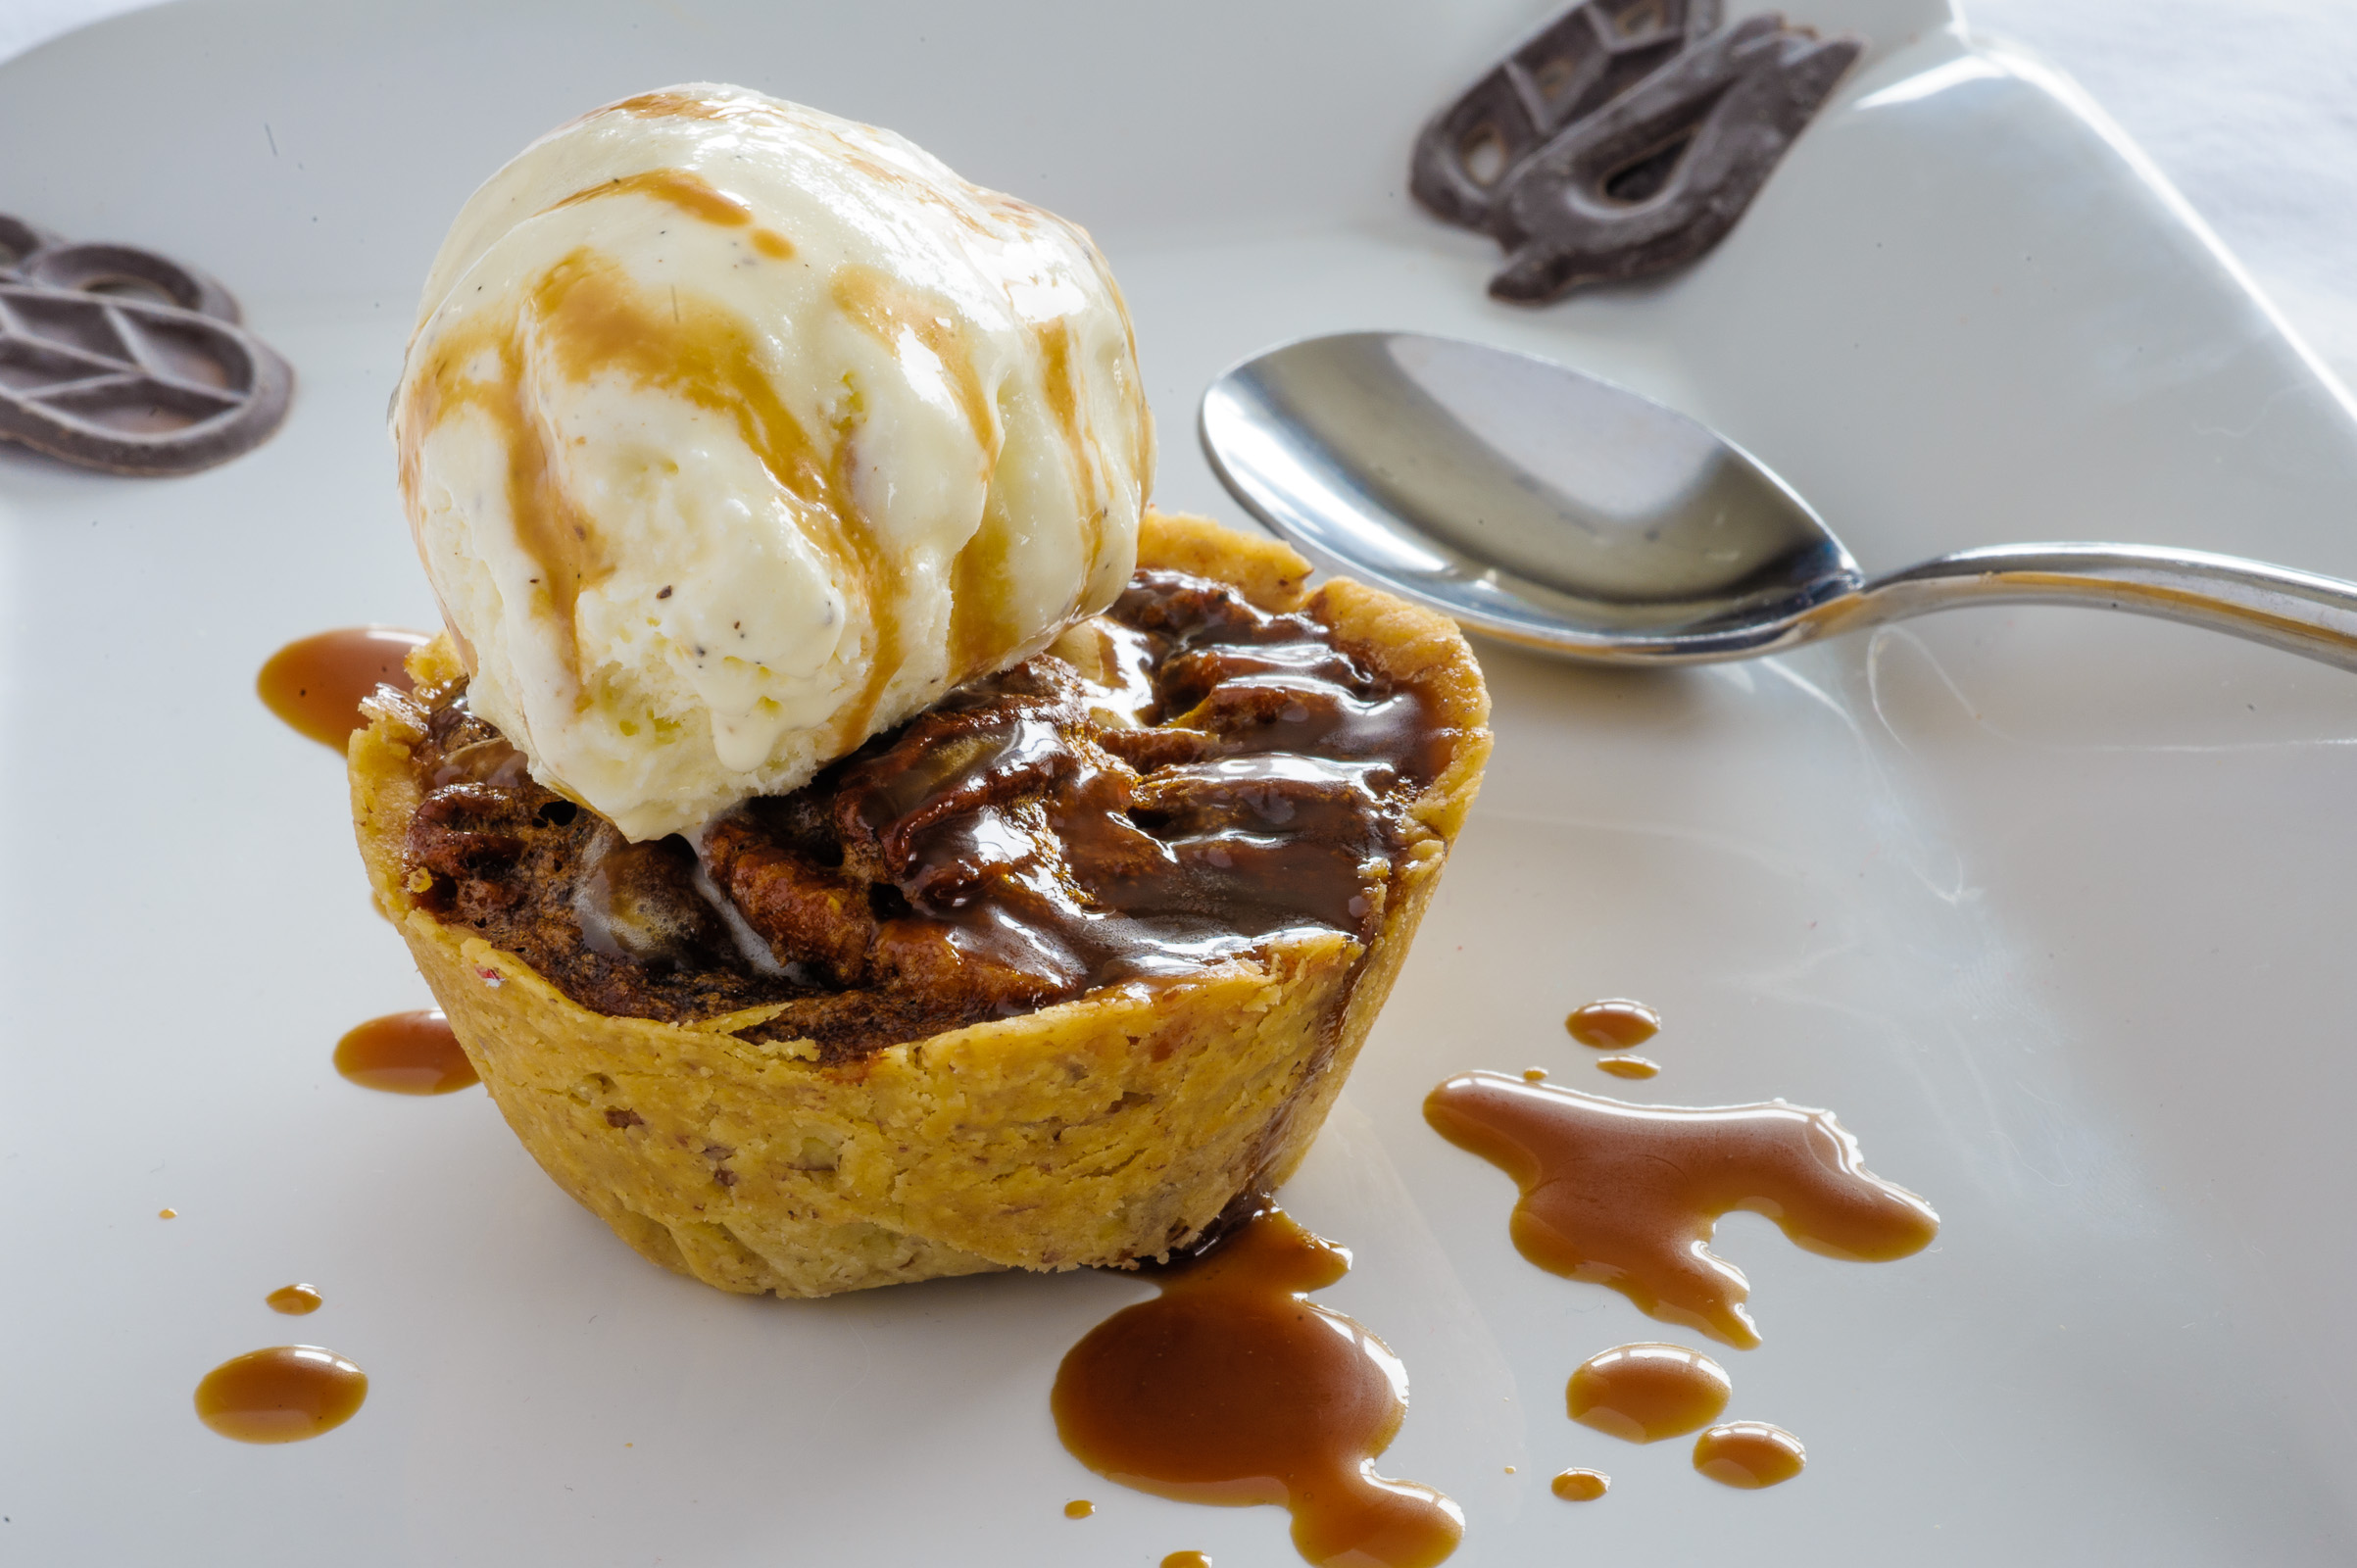 Pecan tart with caramel sauce and vanilla ice cream